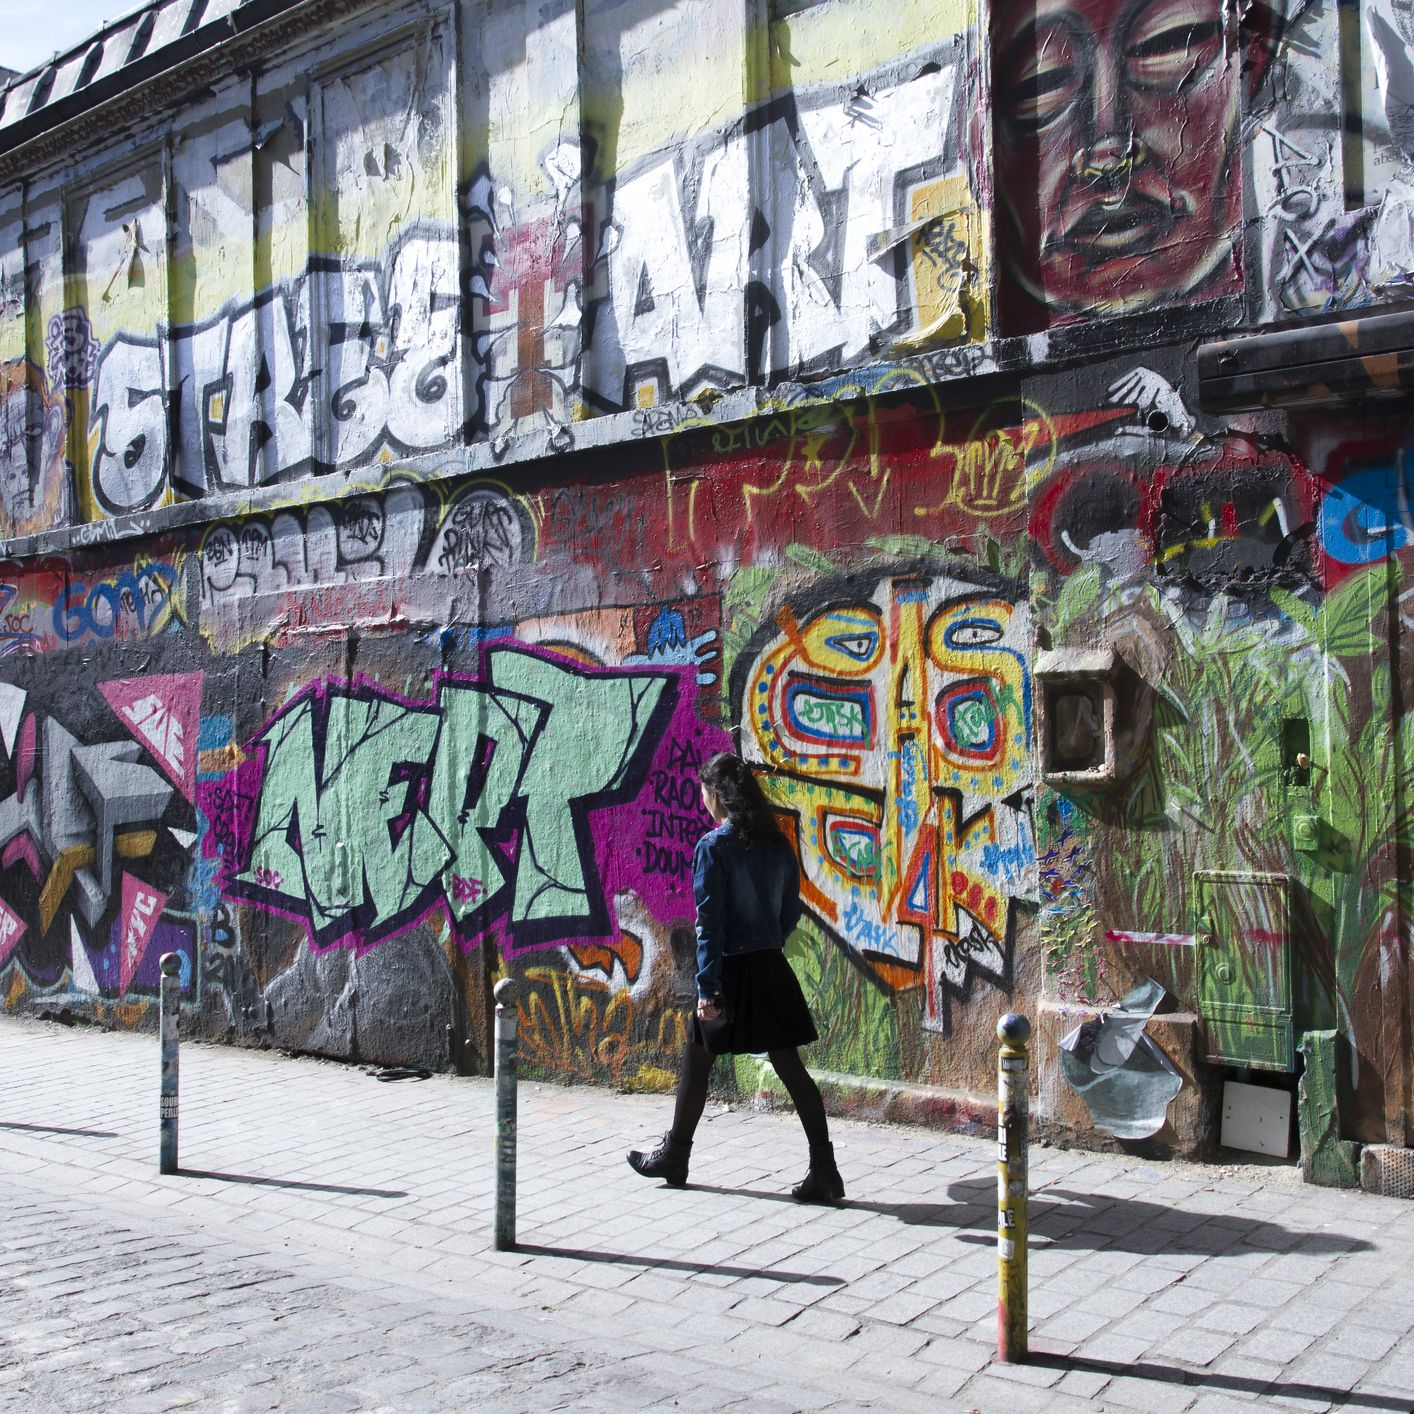 Where to Find the Best Street Art in Paris